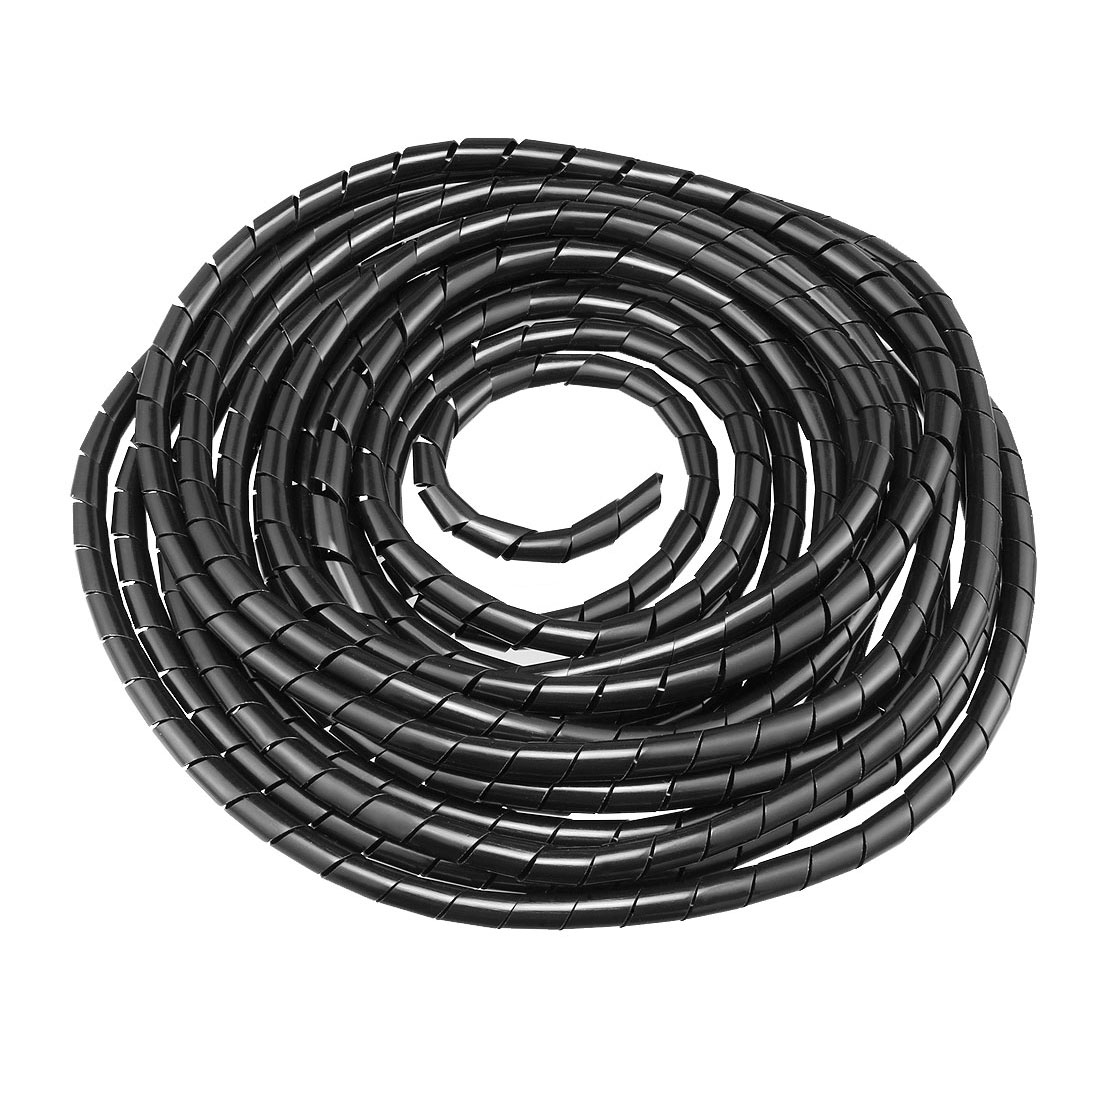 6mm Flexible Spiral Tube Cable Wire Wrap Computer Manage Cord 14M Black